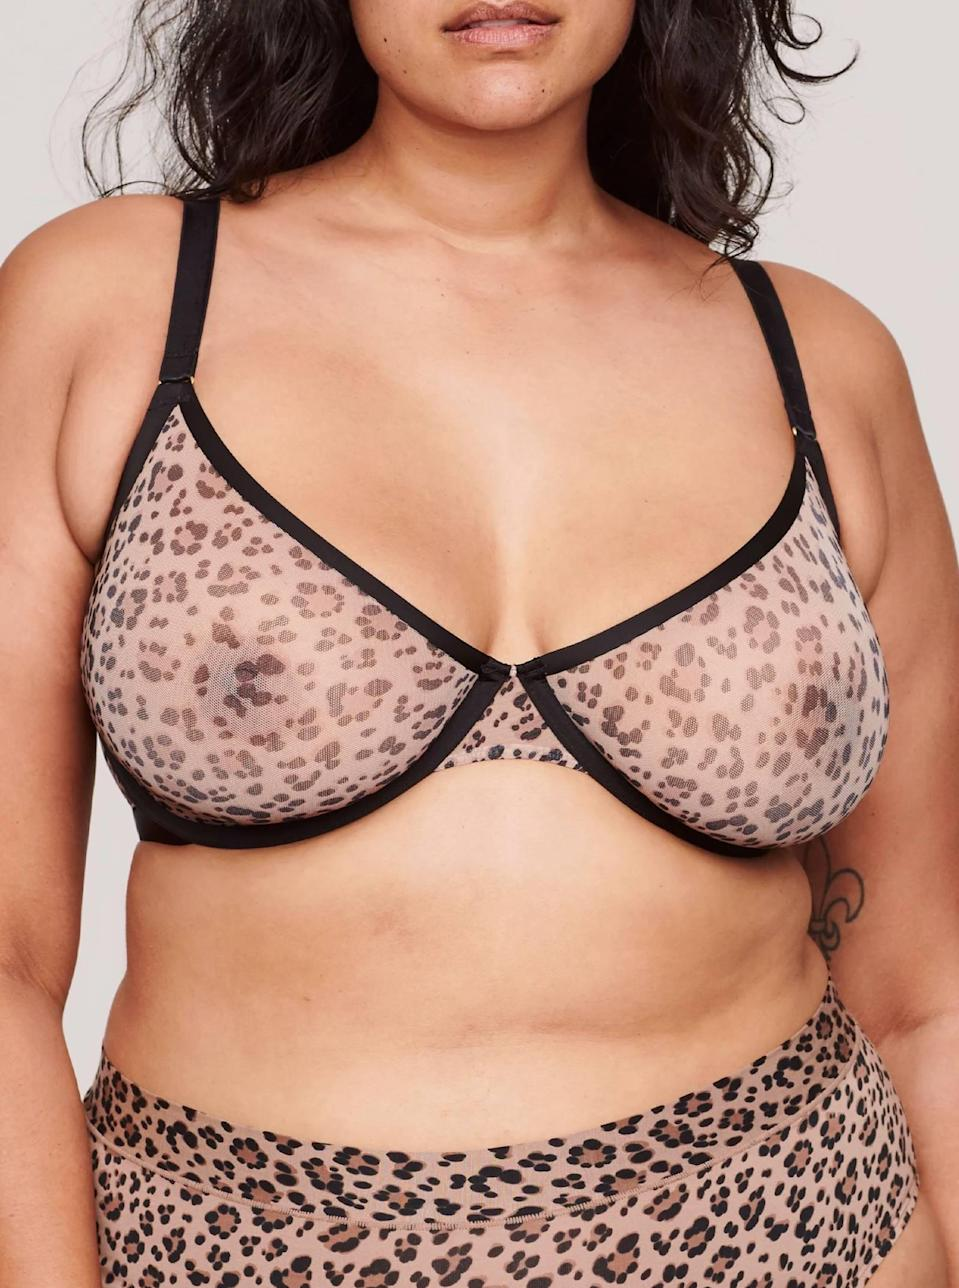 "<p><strong>Key selling points:</strong> Even though it's lightweight and made of mesh, this bra is supportive, secure, and not to mention, stylish, as it comes in nine colors, including leopard print, the ultimate ""neutral."" Plus, it goes up to H cup in sizing.</p> <p><strong>What customers say:</strong> ""Oh my god, these bras...heaven-sent. The leopard mesh is to die for and is so sexy, but fits like a REAL BRA. I always hate wearing bras but this one hits different. I love you Cuup."" — <em>Isabella, reviewer on</em> <a href=""https://cna.st/affiliate-link/21ph1kqPR7kvazrQjGKzdMGXk4oiy6DCW8xMRhhSgCTSrMmybVdA6RJDtKMNb5iJ5o2sEYNw9UqAa3ziXHuSgpTxmLAqKuDuMAXDnCQtR9uVwFbVXRTmo5bbRbrzAjBRTkc5meW88N6bXU4D?cid=606b5b28bb9c80023a579407"" rel=""nofollow noopener"" target=""_blank"" data-ylk=""slk:Cuup"" class=""link rapid-noclick-resp""><em>Cuup</em></a></p> $68, Cuup. <a href=""https://shopcuup.com/products/the-plunge-mesh-leopard?"" rel=""nofollow noopener"" target=""_blank"" data-ylk=""slk:Get it now!"" class=""link rapid-noclick-resp"">Get it now!</a>"